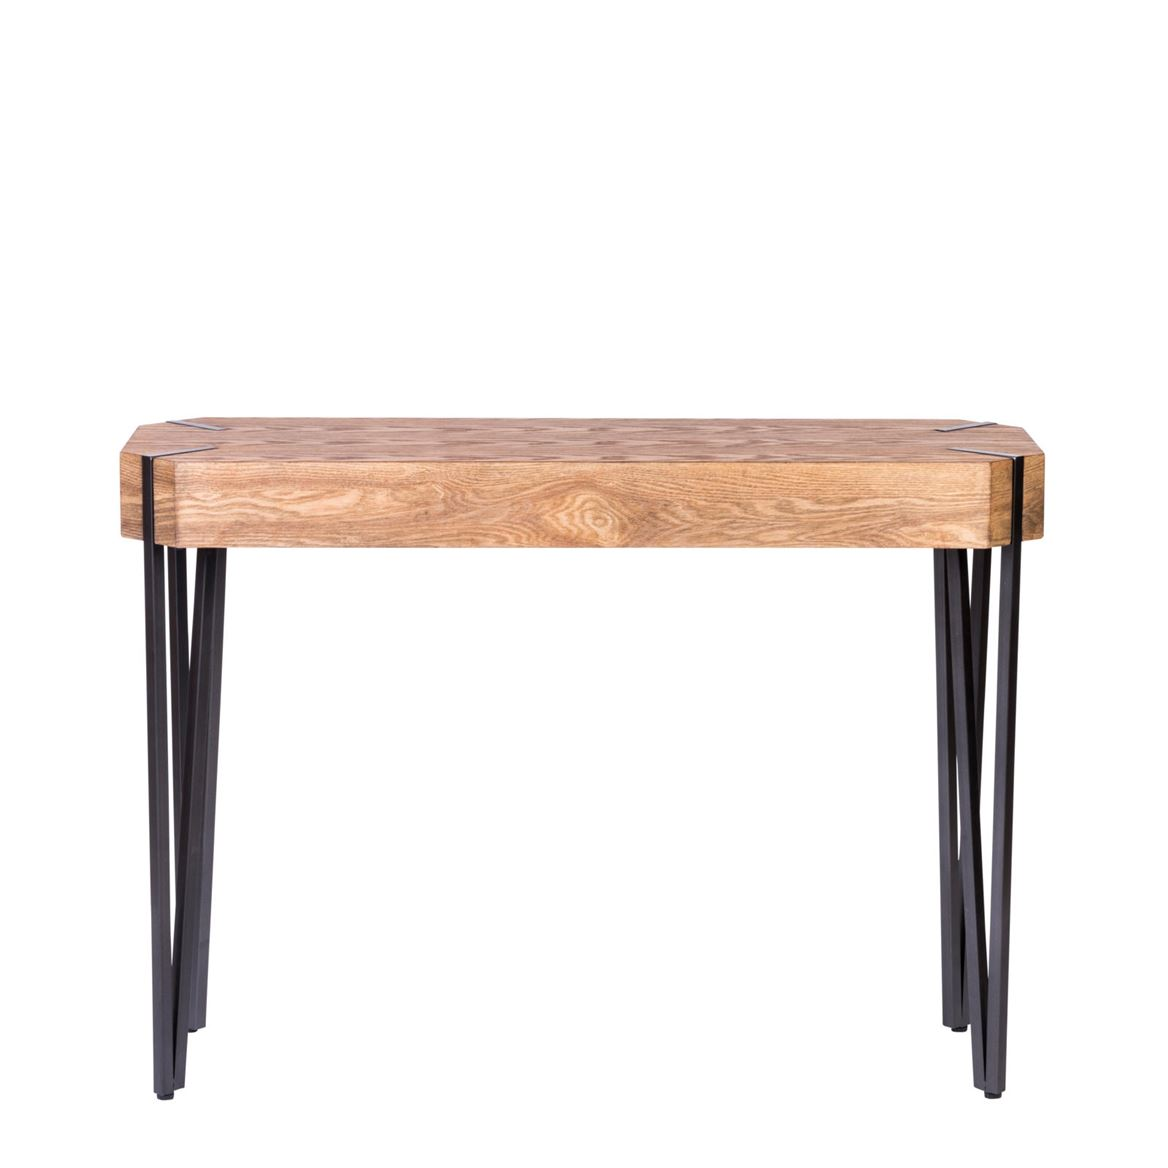 LANON Table murale noir, naturel H 77 x Larg. 107 x P 36 cm_lanon-table-murale-noir,-naturel-h-77-x-larg--107-x-p-36-cm